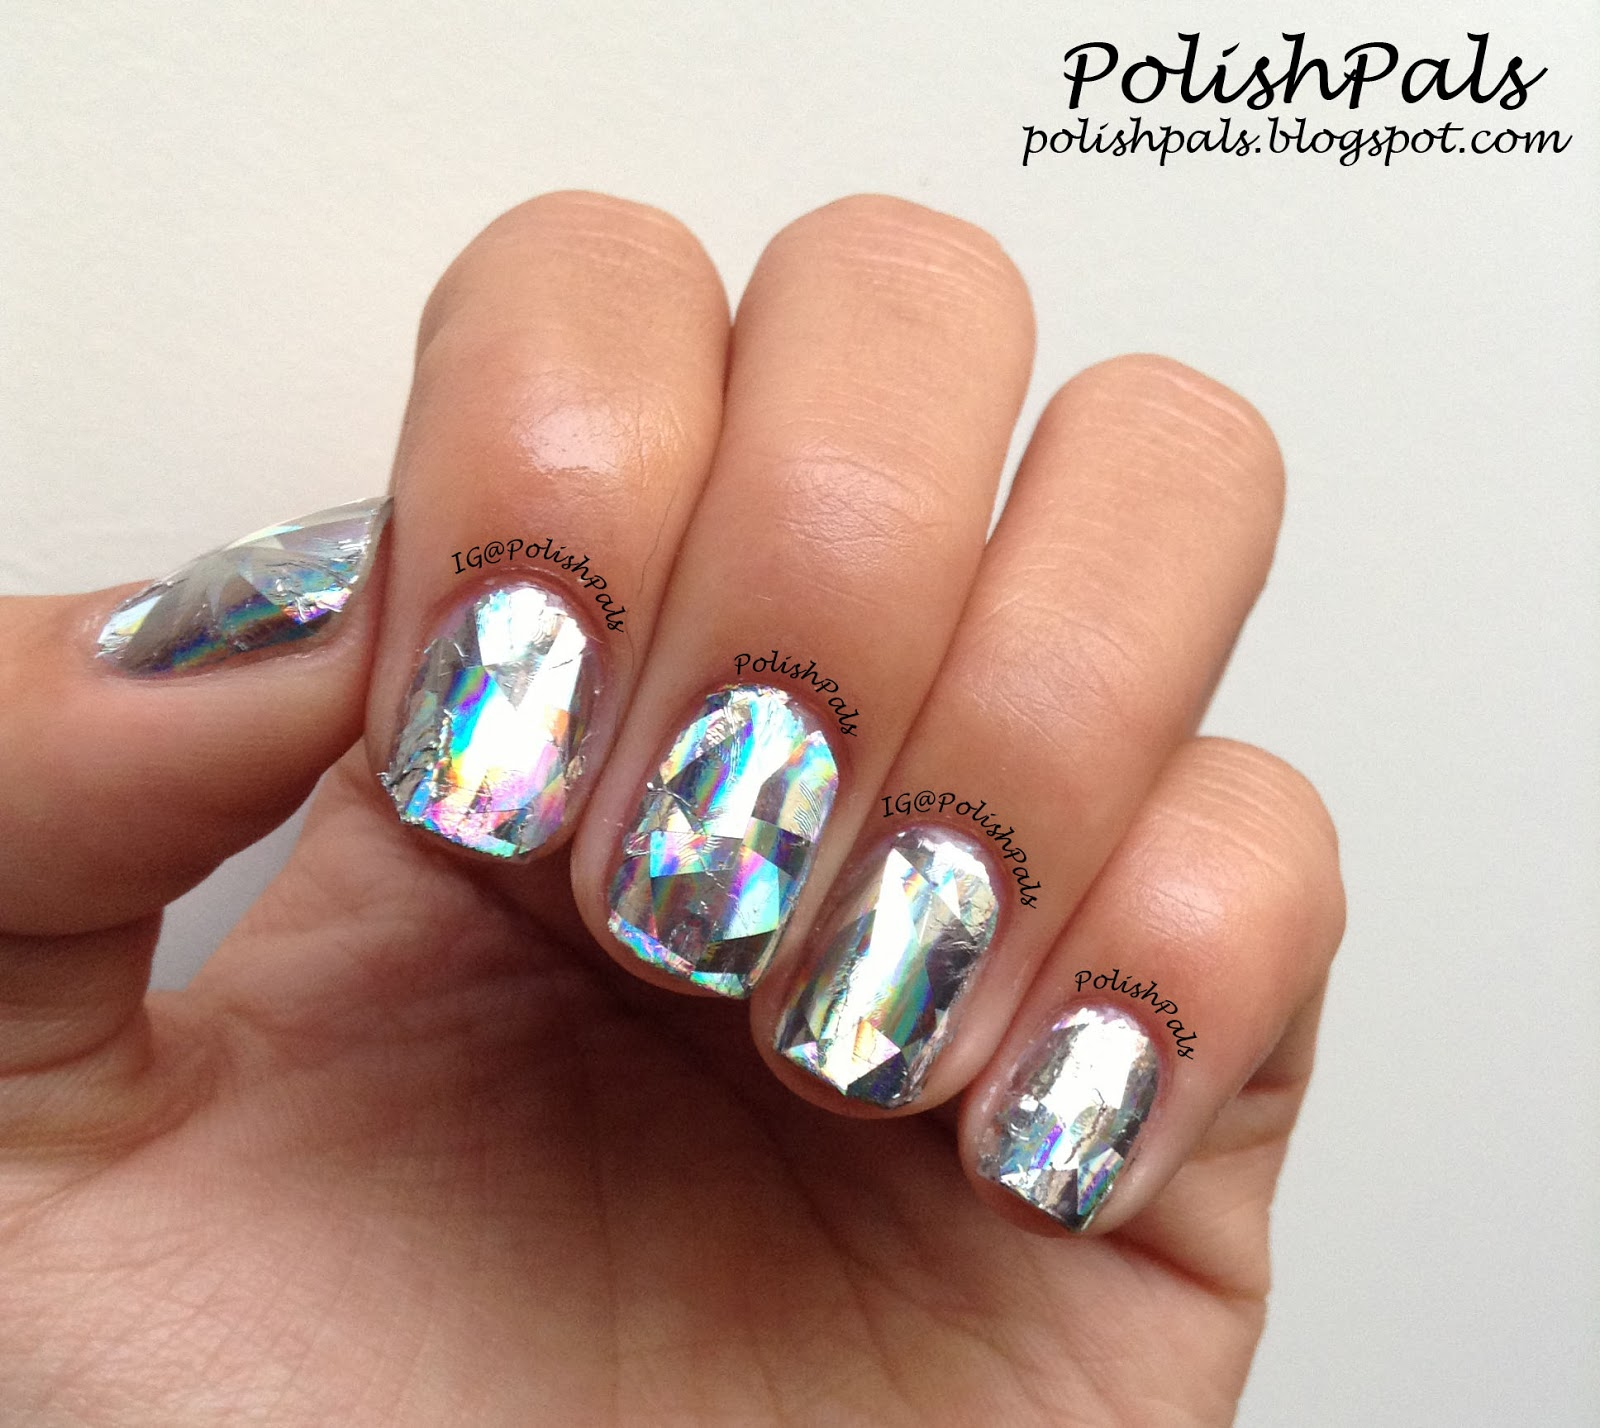 Polish Pals: Nail Foil Review {From KKCenterHK}